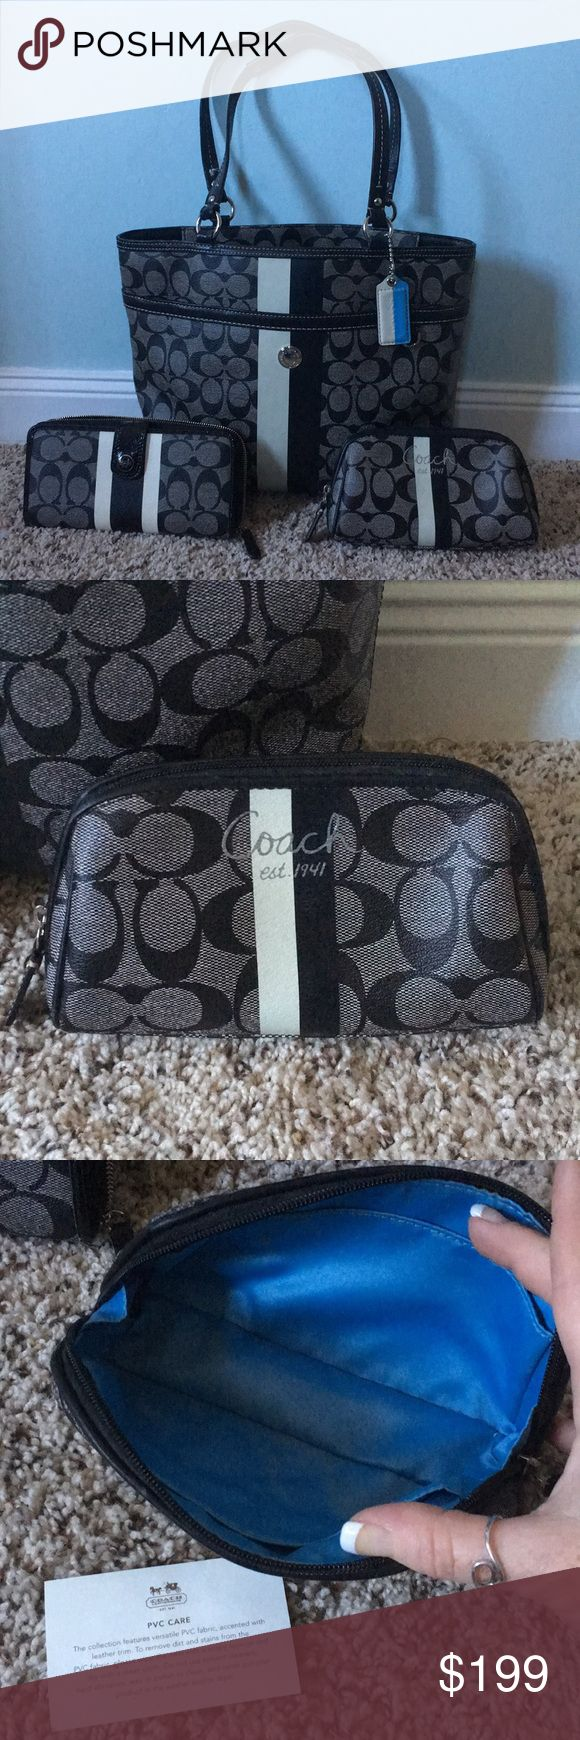 3 pc EUC coach set matching wallet makeup bag Excellent used condition black and gray coach with white stripe from the coach heritage collection beautiful inside and out, this piece is clean clean clean. Blue satin interior has a couple of stains but exterior is almost perfect handles are in almost perfect condition the zipper and snap buttons are functional on all three pieces the full-size wallet has a zipper change pouch, makeup bag is perfect sized for checkbook/stamps as well. Can't say…